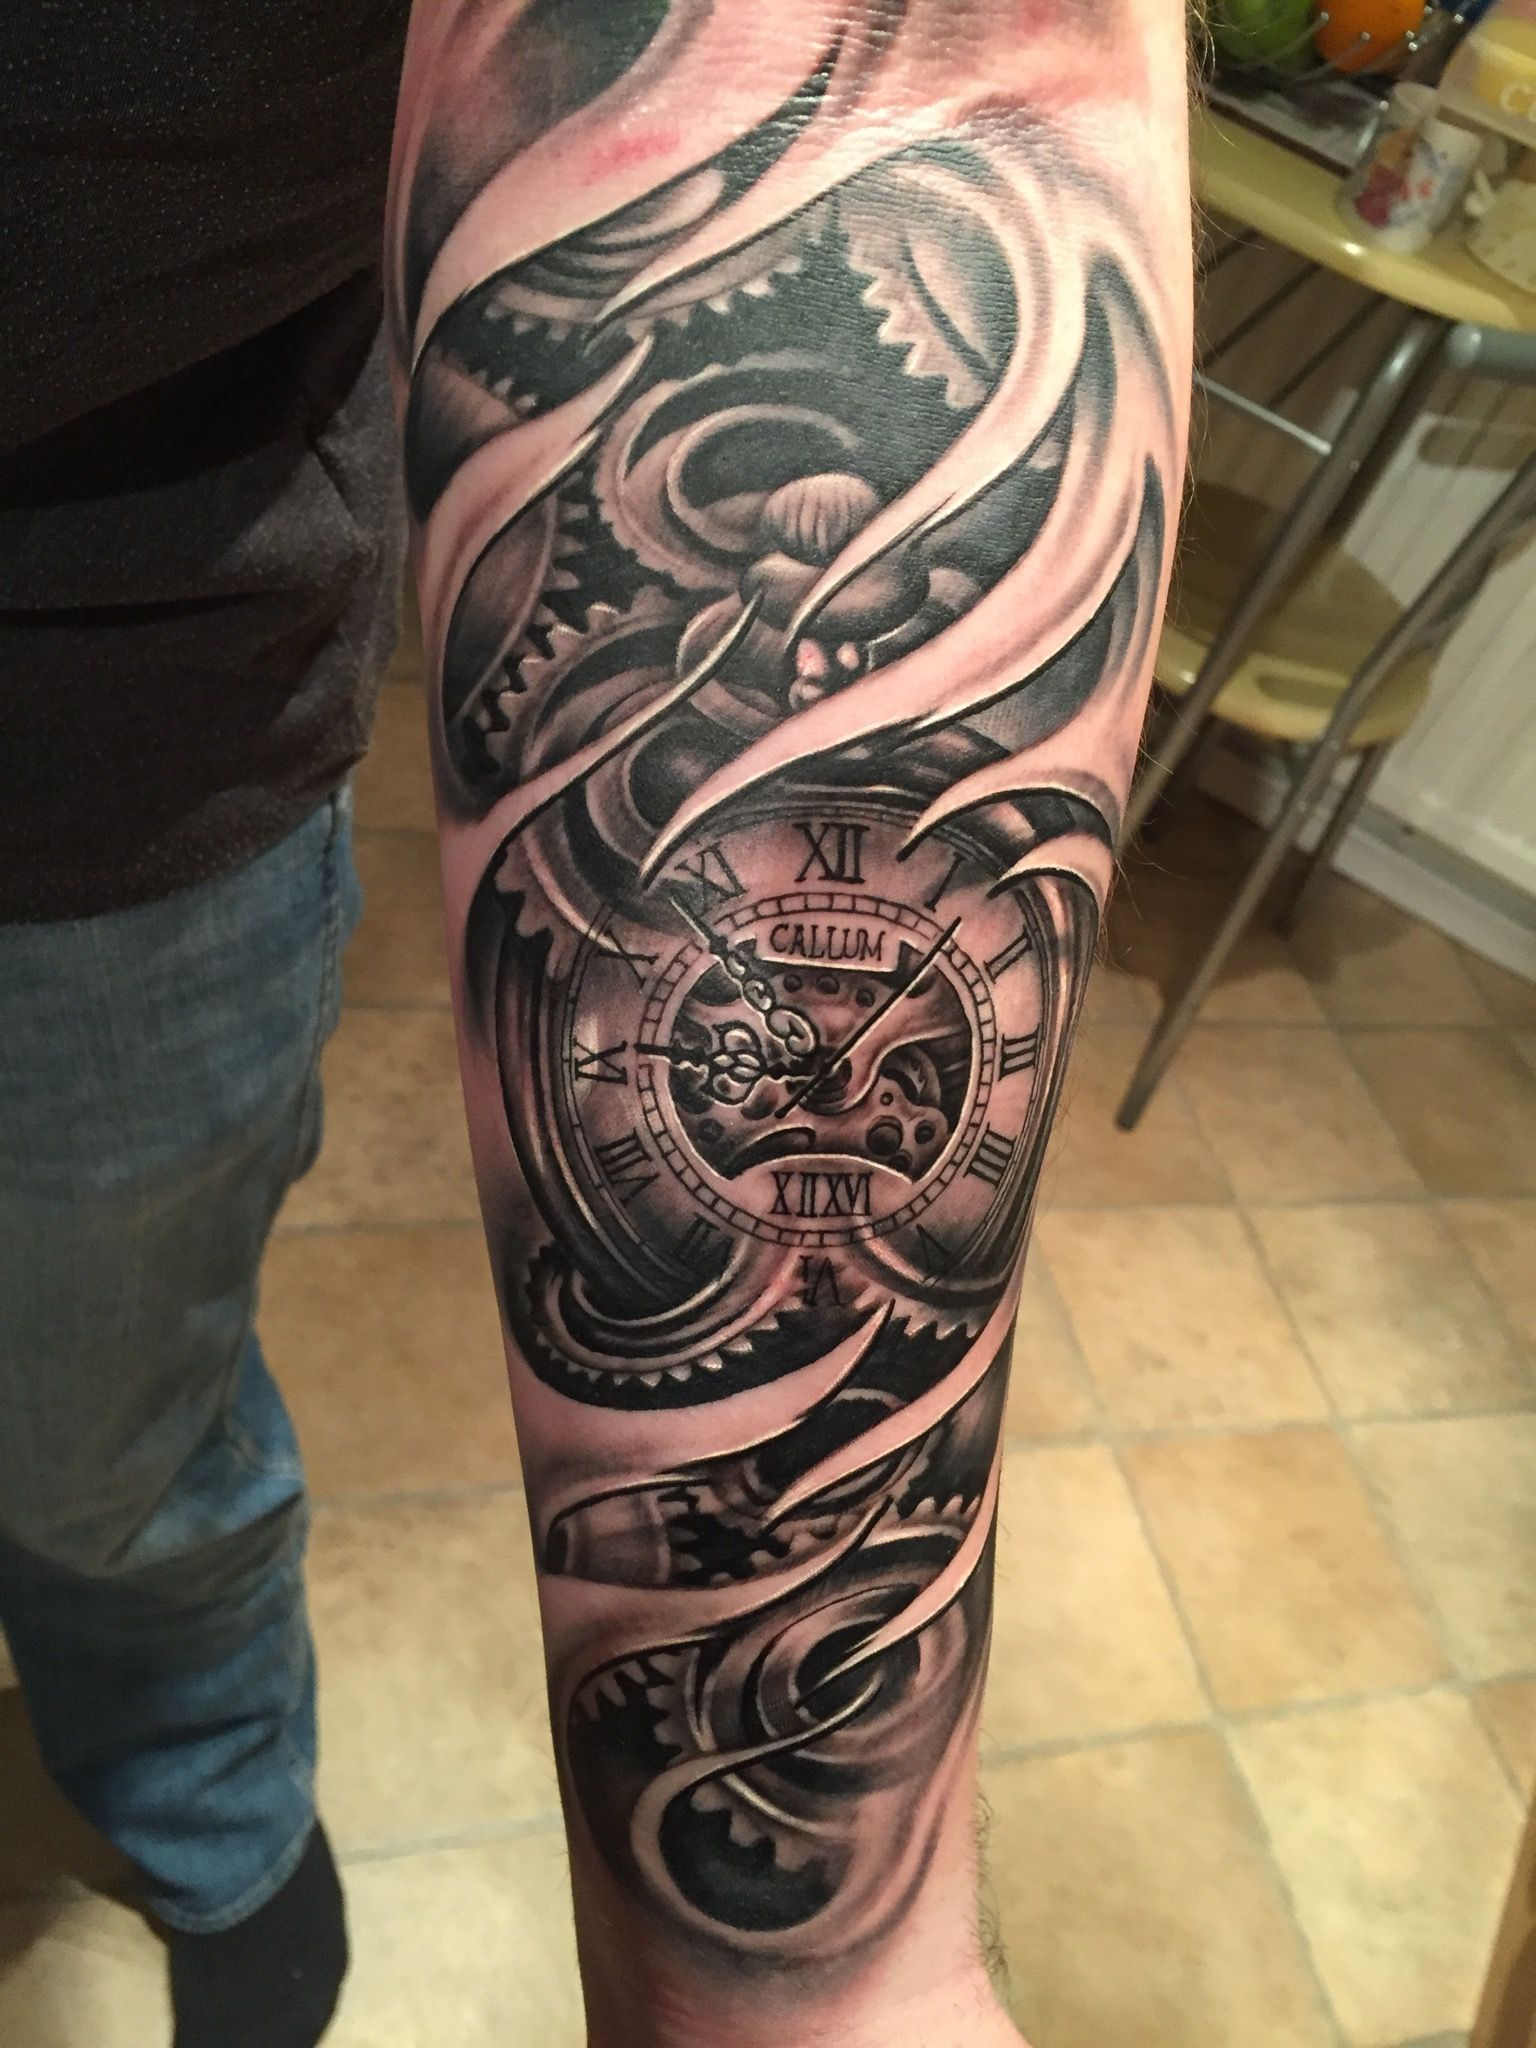 Tattoo tattoos Pinterest Tattoo, Tatoo and Clocks